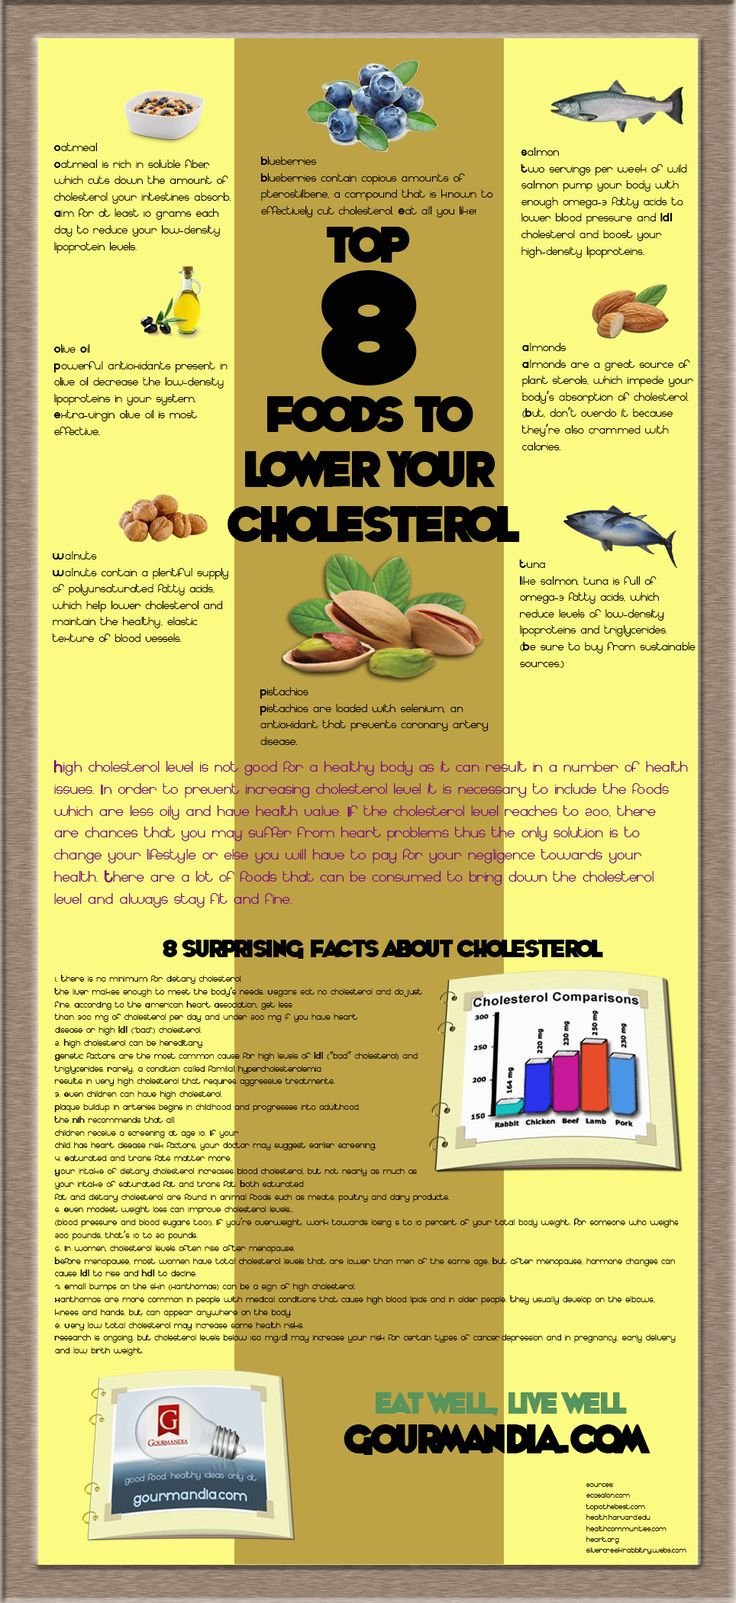 Top 8 Foods to Lower your Cholesterol Infographic